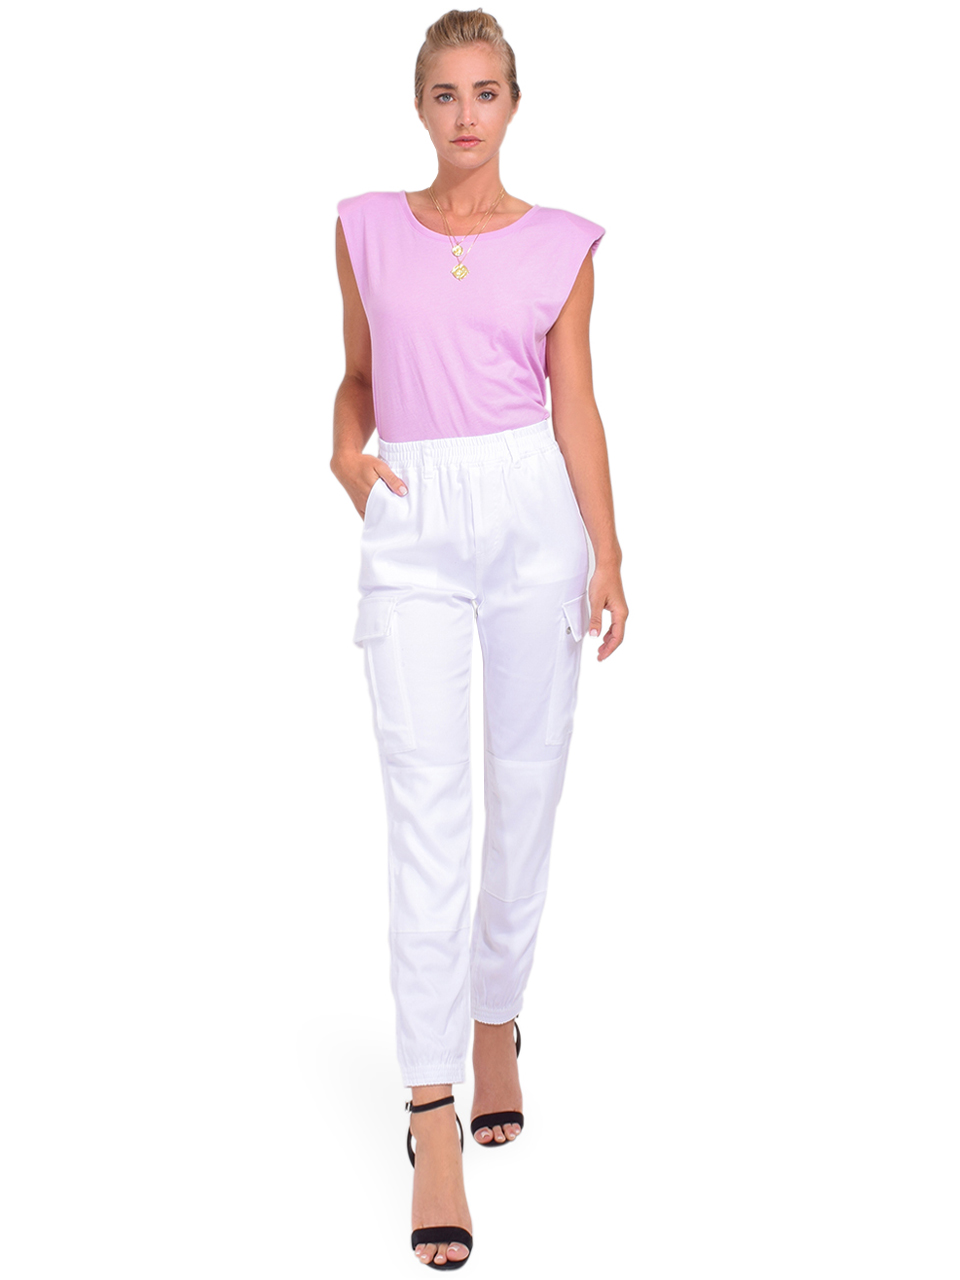 Alla Berman Jaymes Tee in Lilac Full Outfit